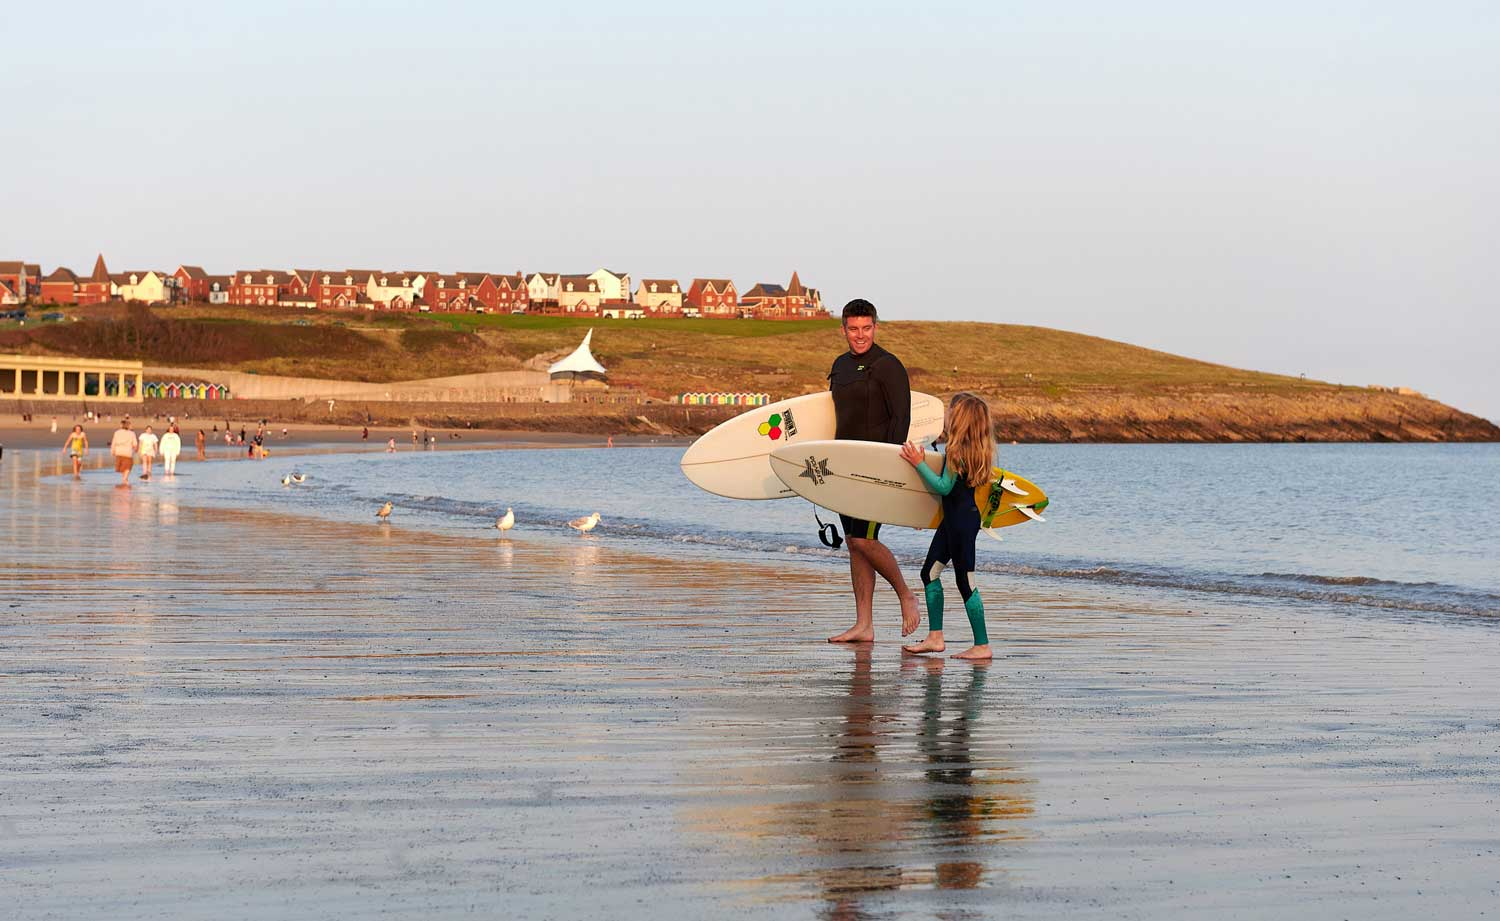 A father and daughter carrying surfboards with Barry beach huts in the distant background